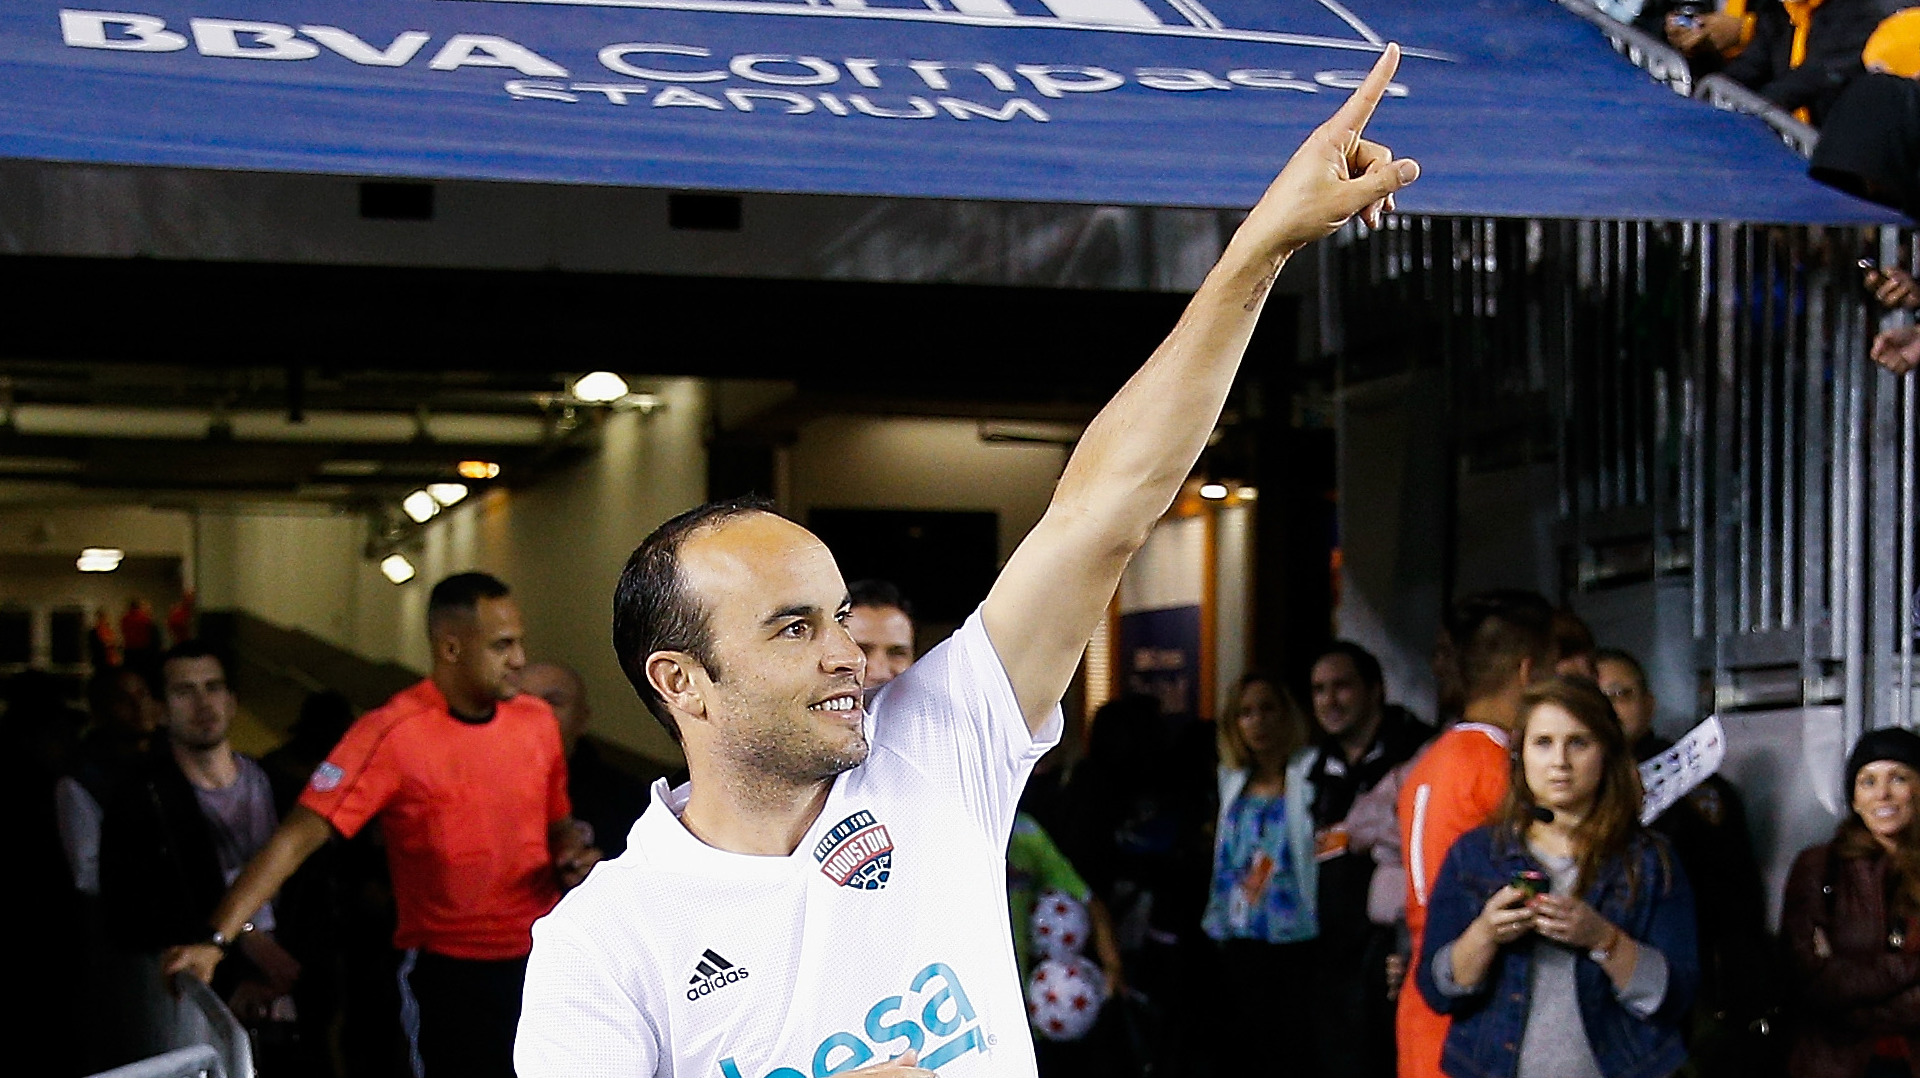 Landon Donovan Houston charity game